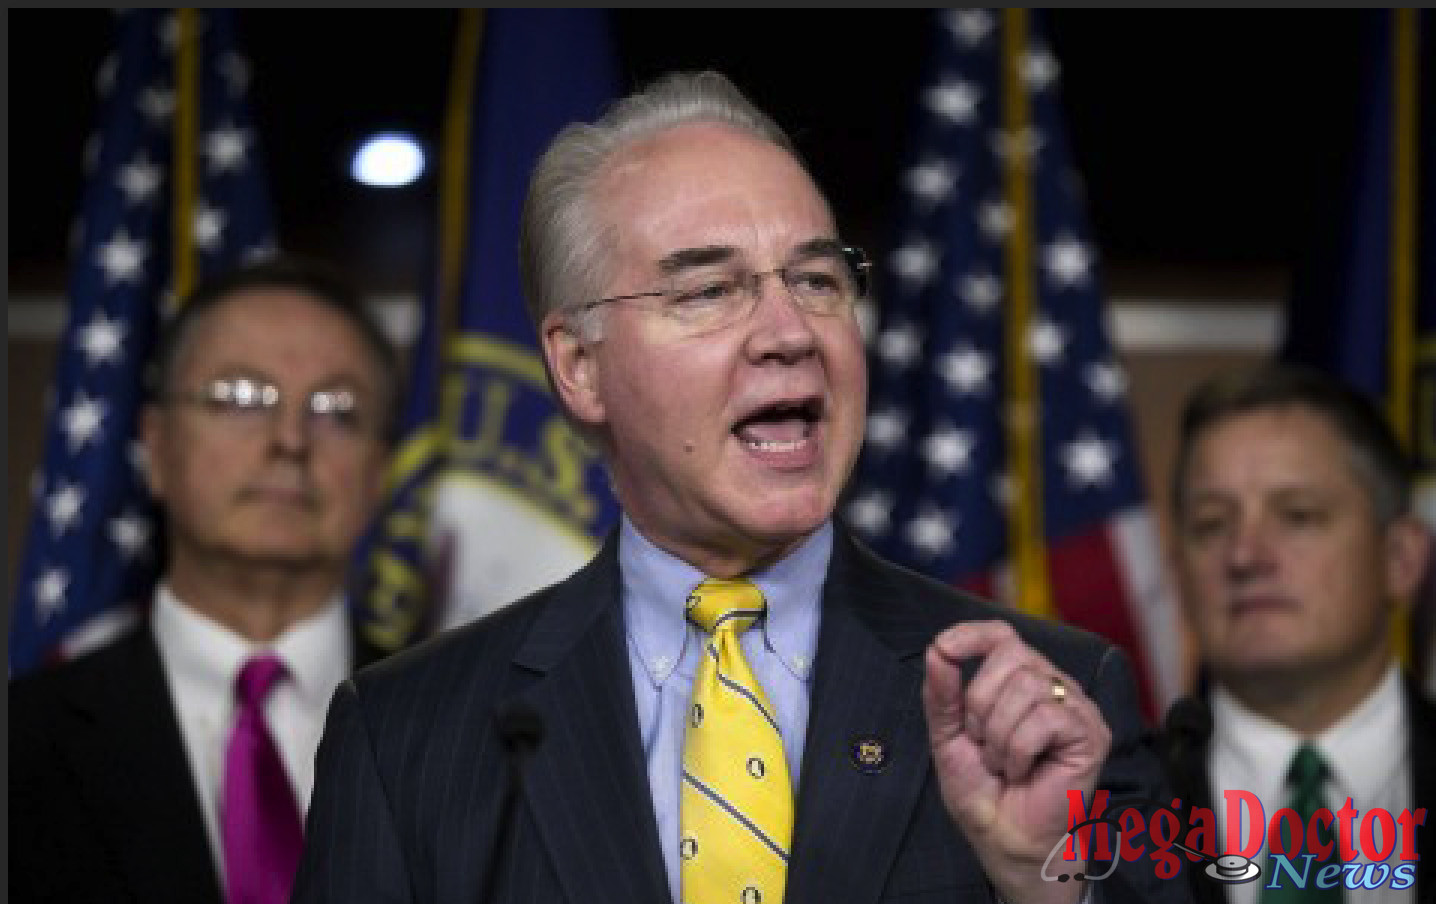 Rep. Tom Price (R-Ga.), a veteran lawmaker and vehement critic of the Affordable Care Act, has been picked as President-elect Donald Trump's choice to lead the Department of Health and Human Services.